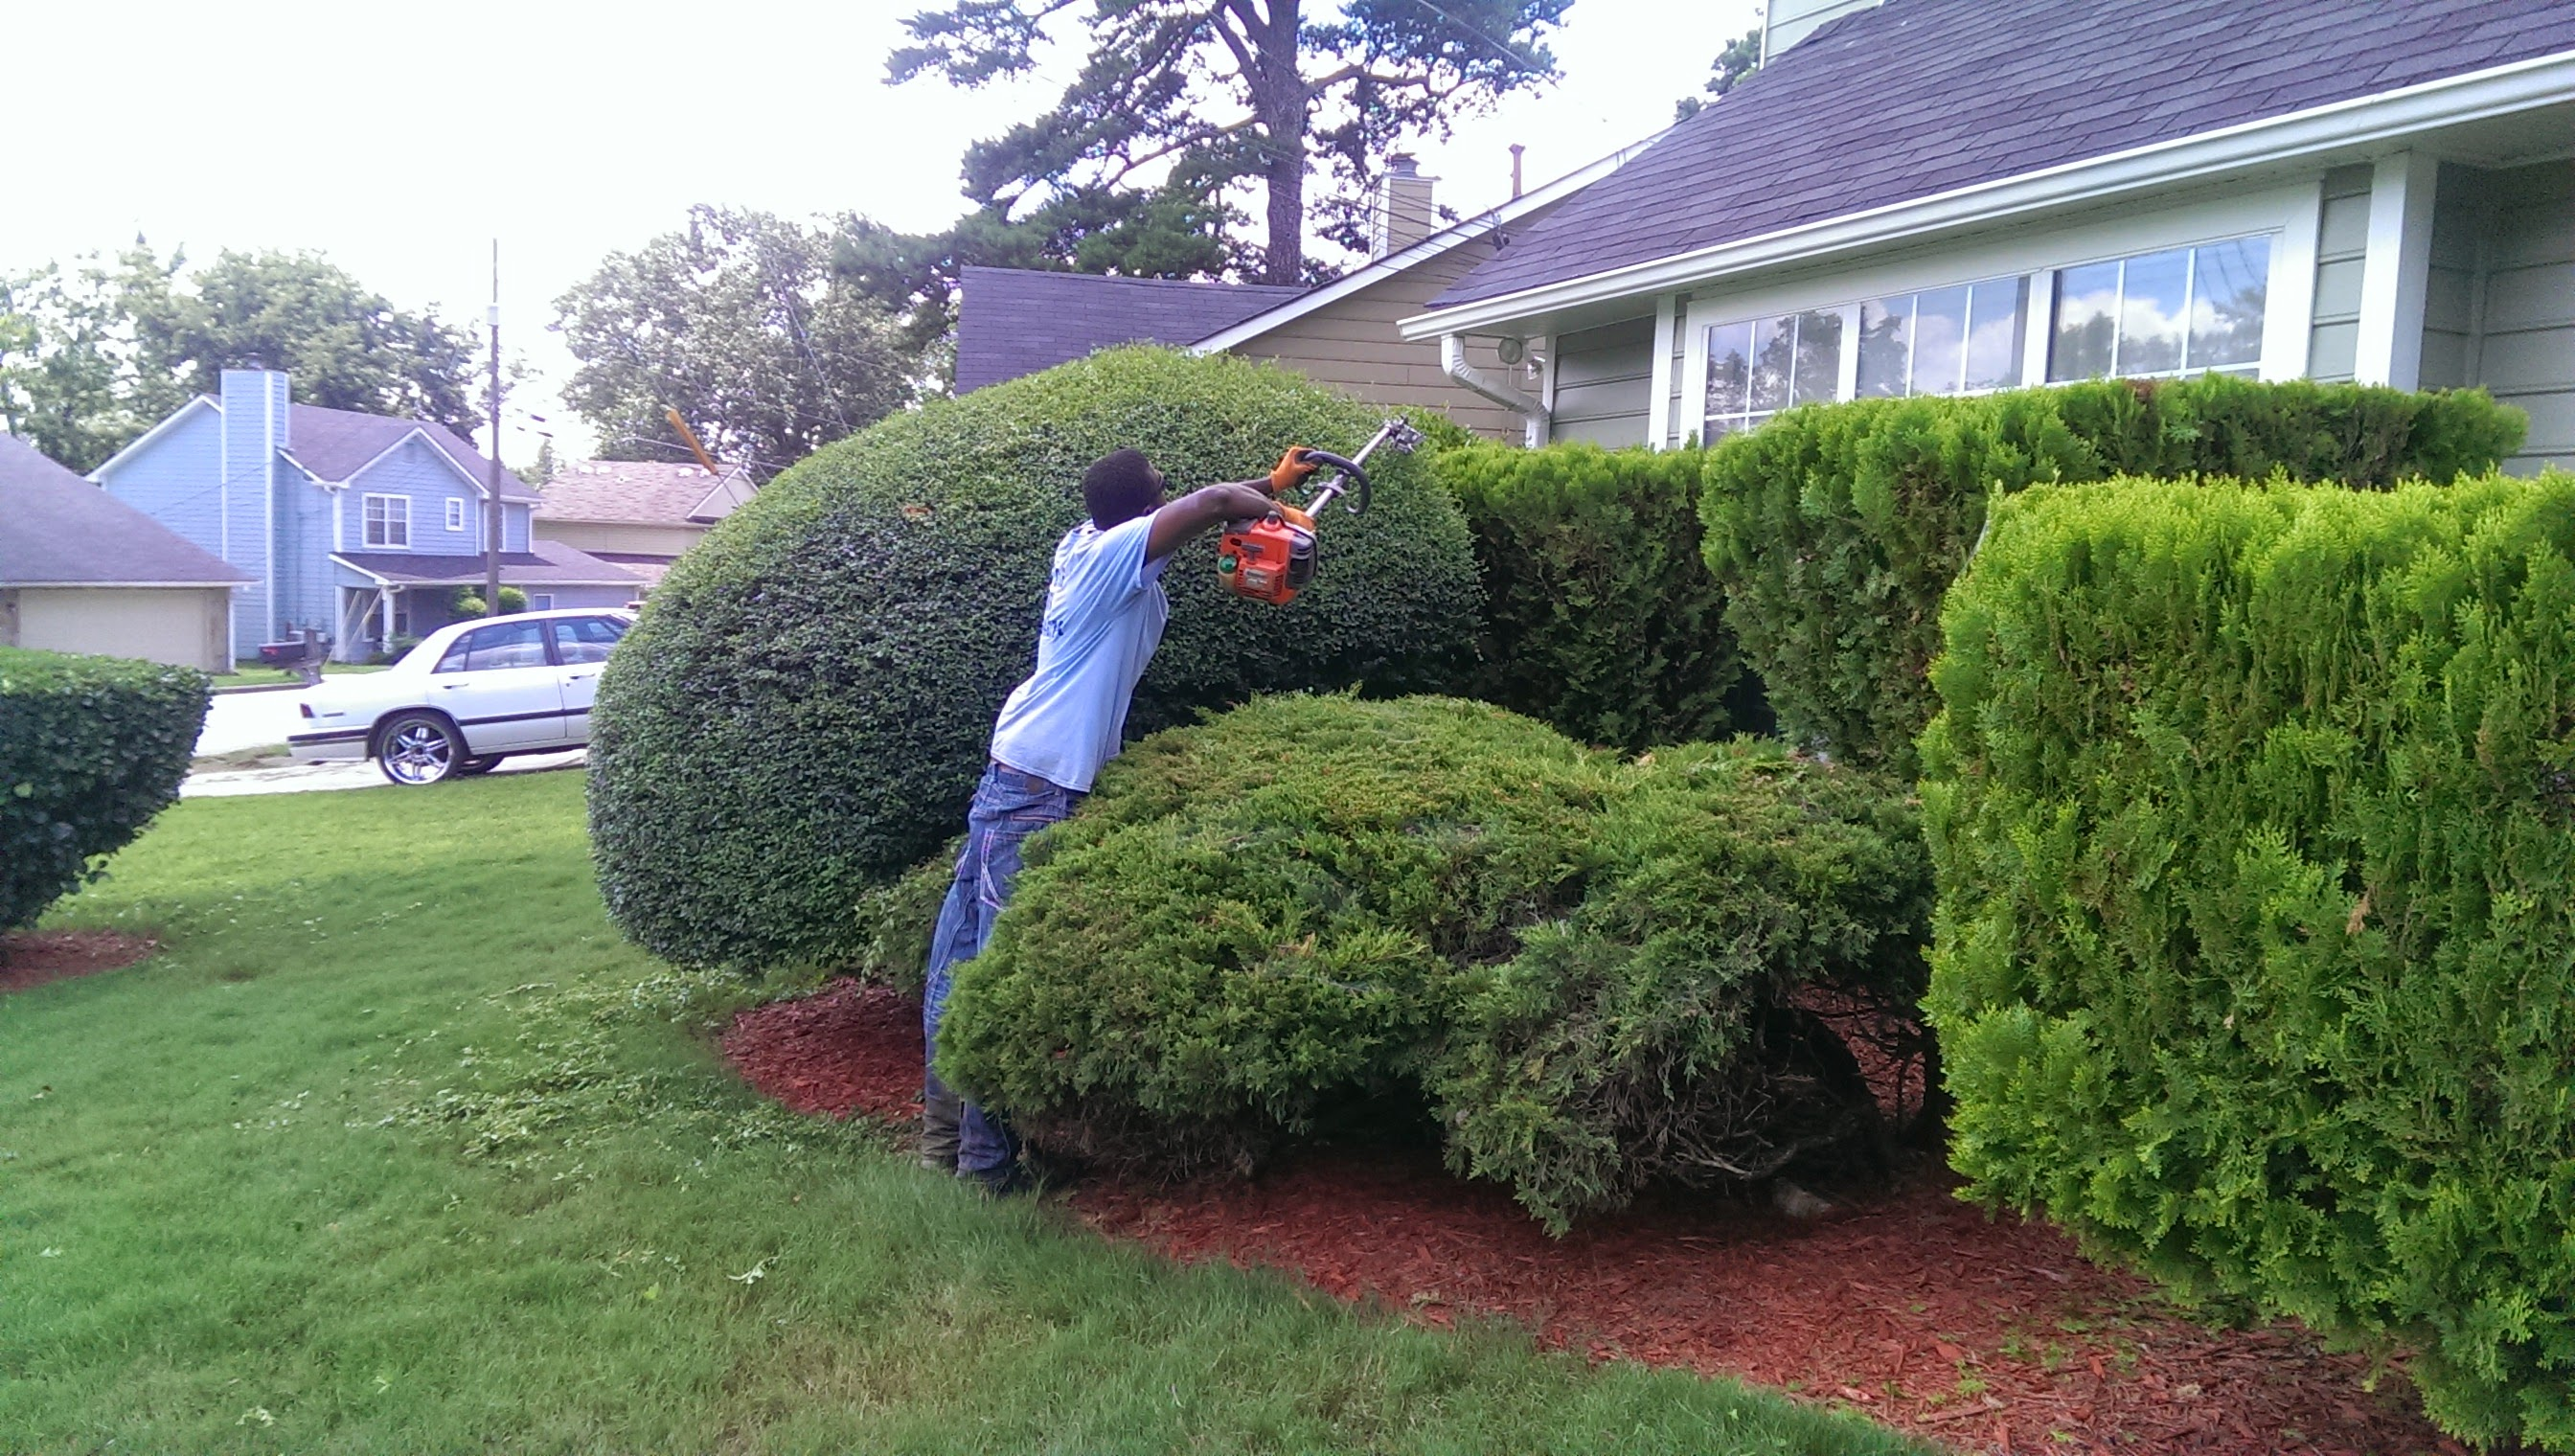 Lawn Mowing Contractor in Stone Mountain, GA, 30086